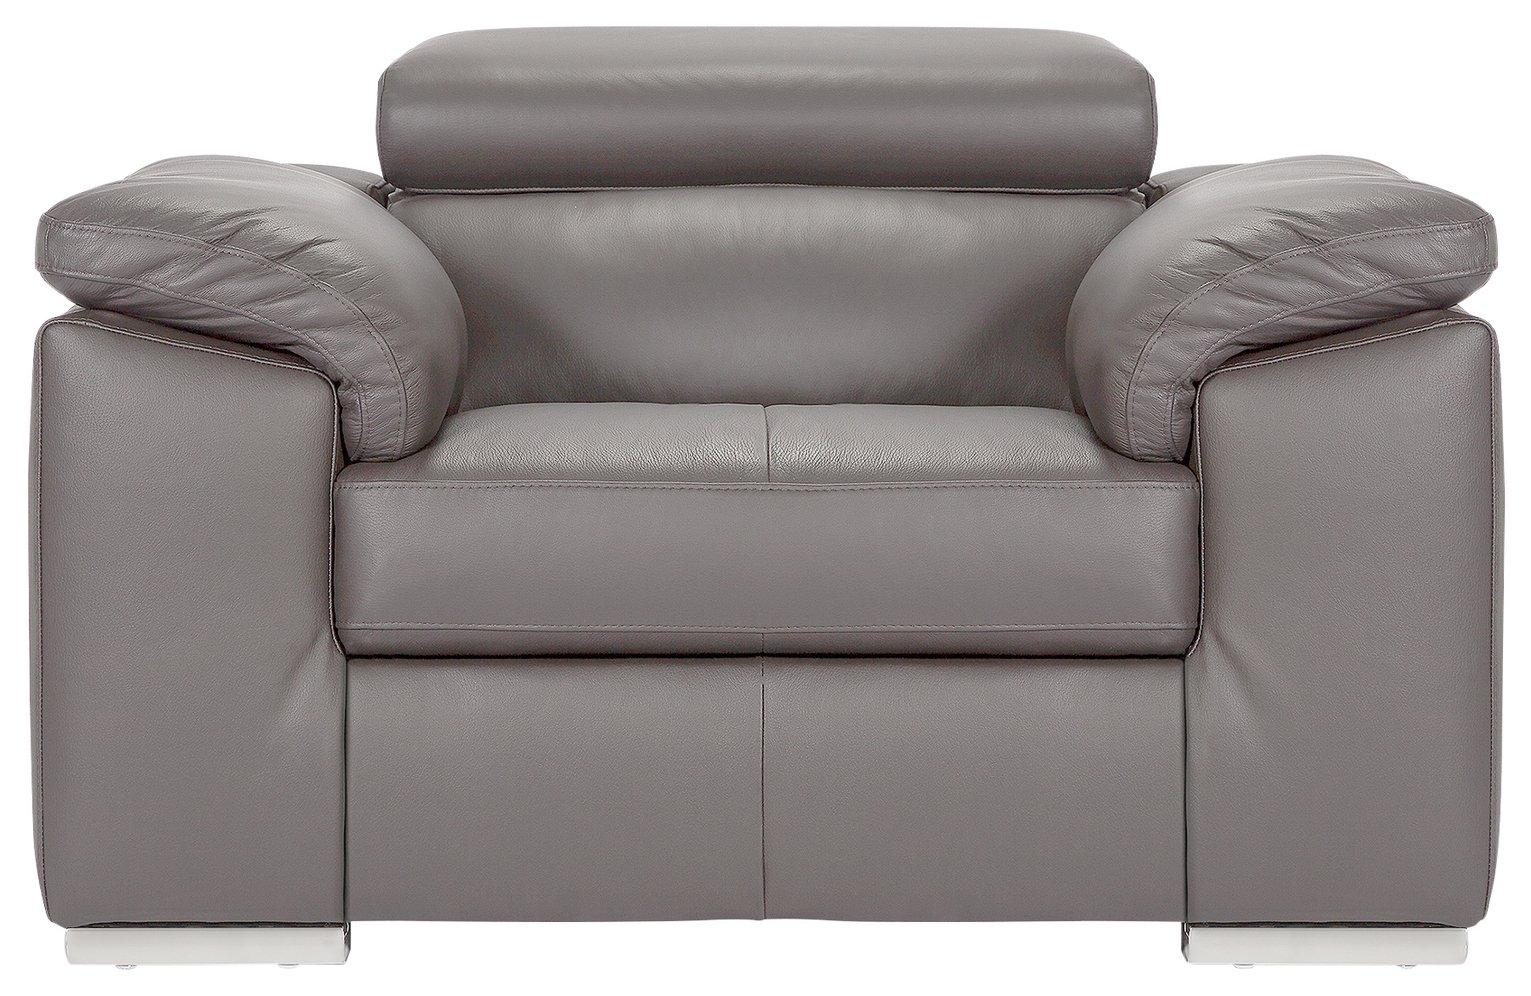 Argos Home Valencia Leather Armchair - Light Grey